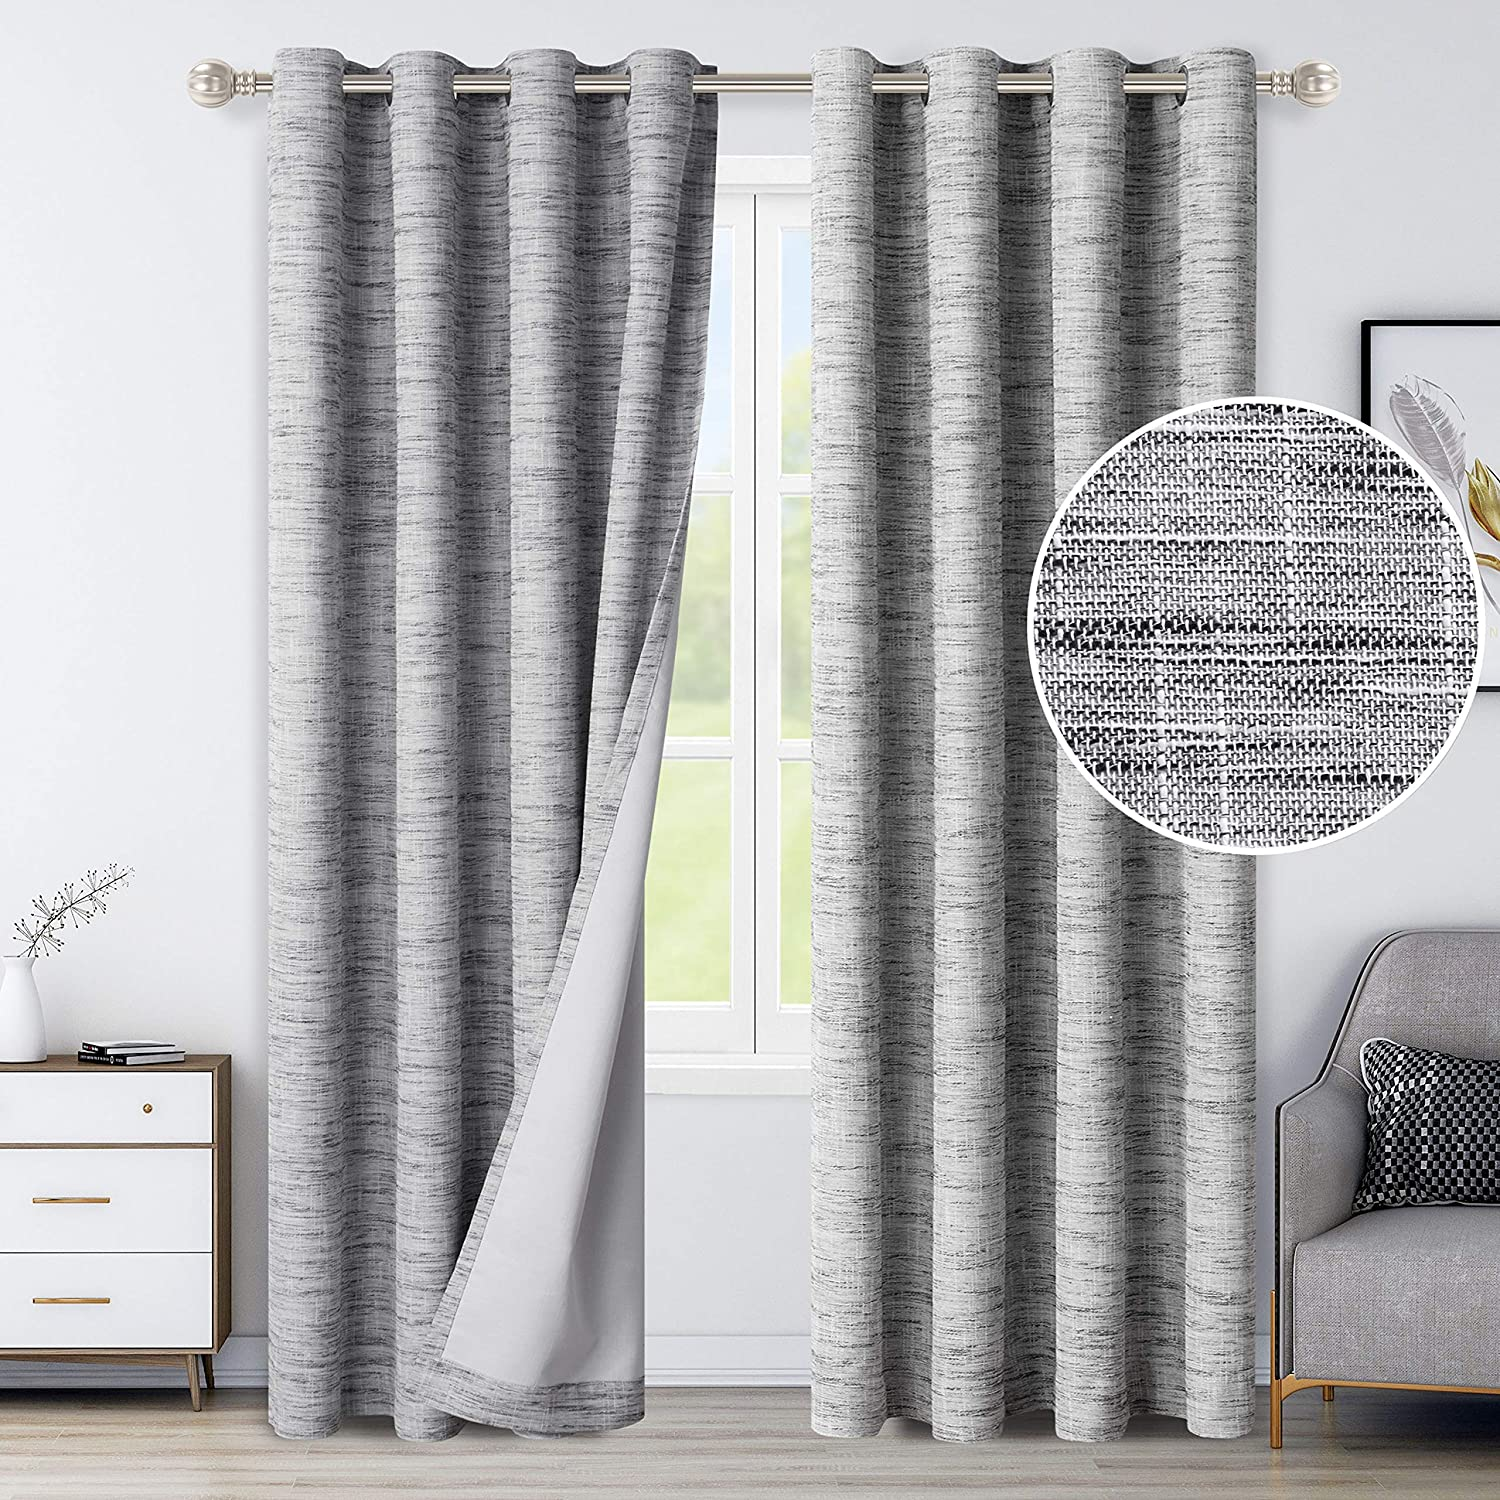 LORDTEX 100% Blackout Curtains for Bedroom - Textured Primitive Linen Look Heavy Duty Curtains with Thermal-Bond Washable Grommet Top Window Drapes for Living Room, 2 Panels, Grey, 52 x 84 inch